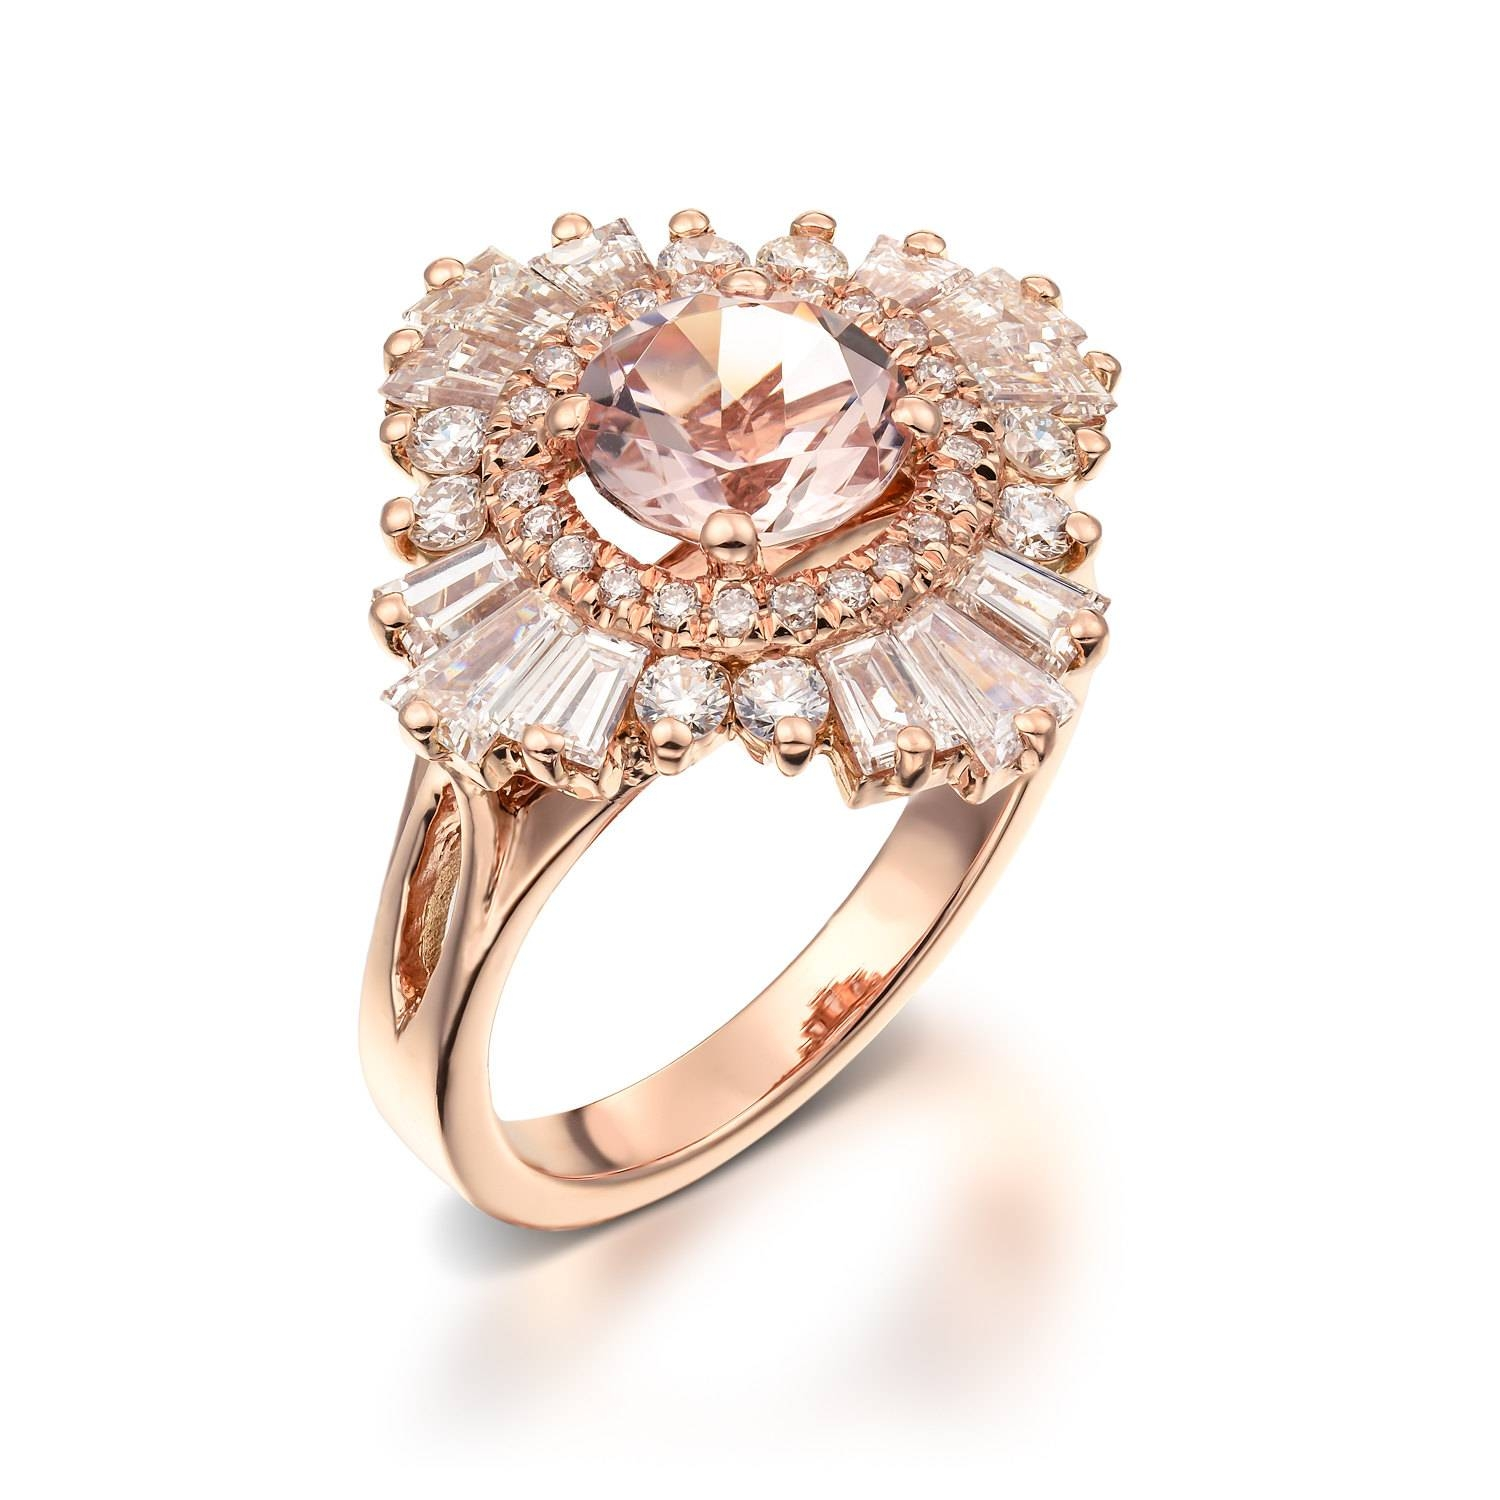 Unique Engagement Ring 18K Rose Gold Diamonds And Morganite In Most Popular Rose Gold Anniversary Rings (Gallery 24 of 25)